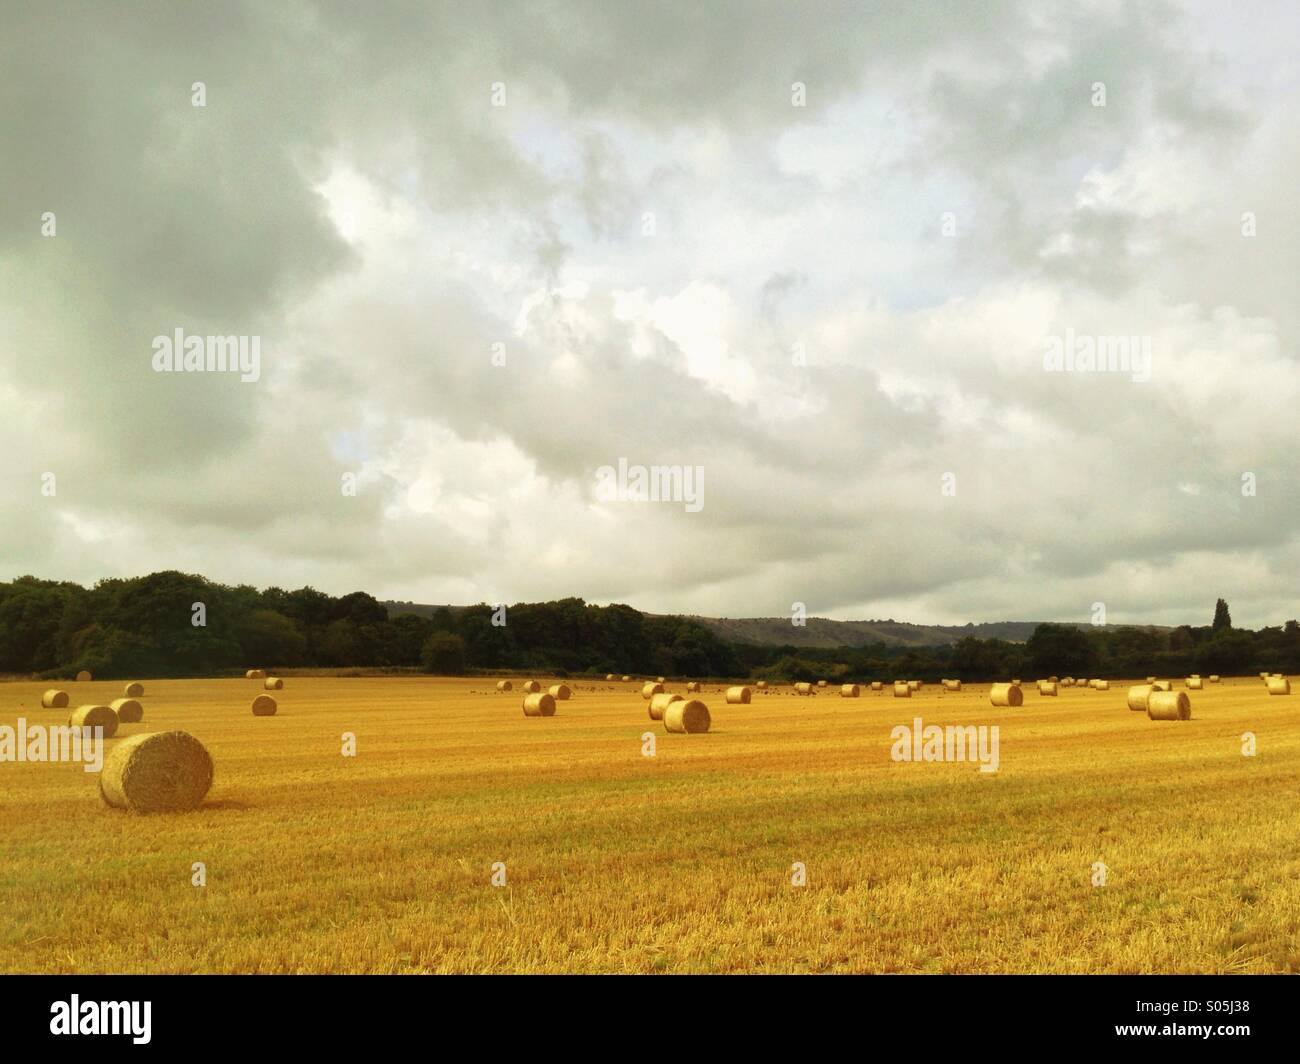 Make hay while the sun shines - a field full of bales of hay ready for collection. - Stock Image